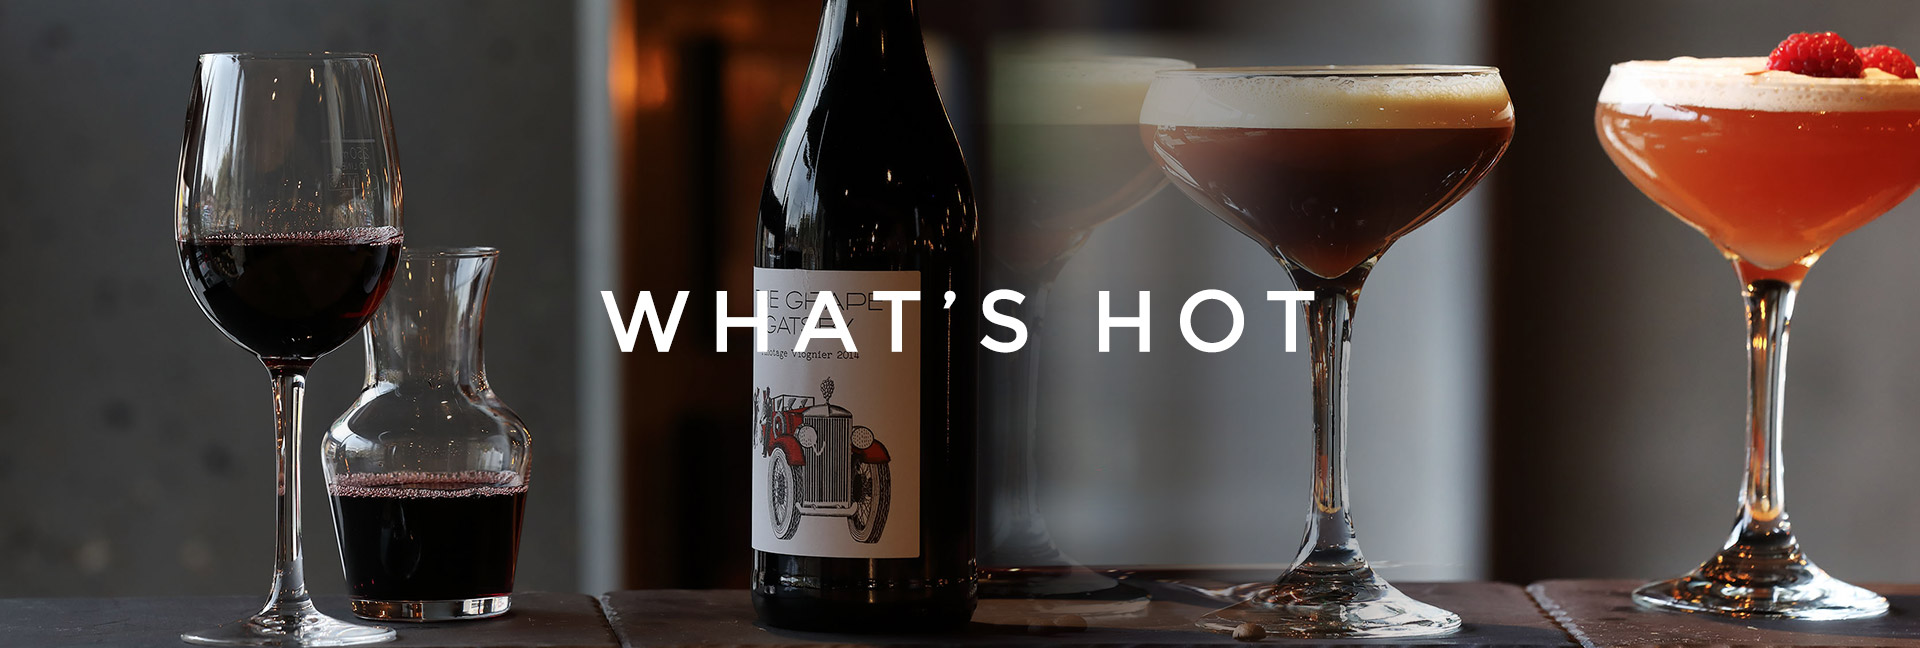 What's Hot at All Bar One Glasgow